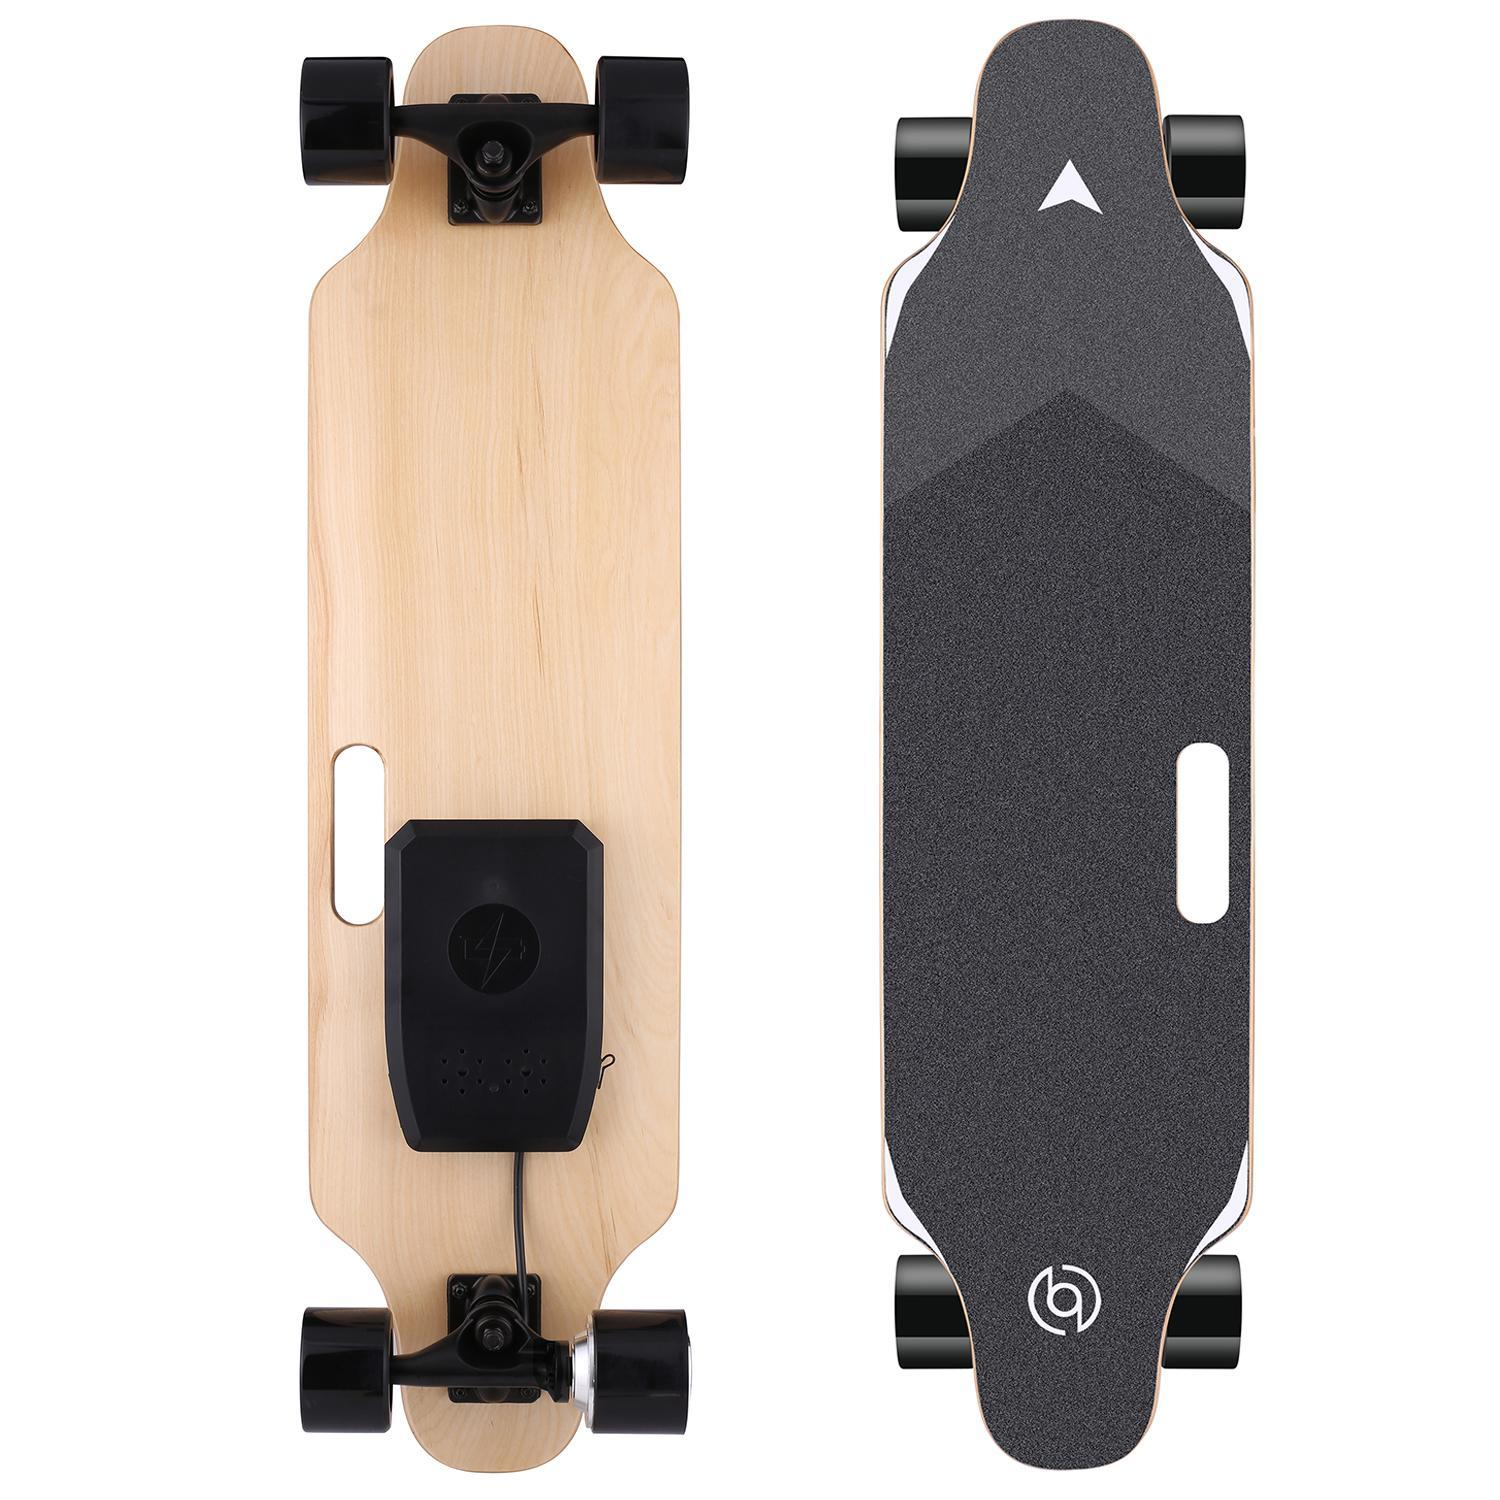 20Km//h Top Speed OppsDecor Electric Skateboard with Wireless Remote Control 10 Miles Range 7 Layers Maple Longboard US Stock